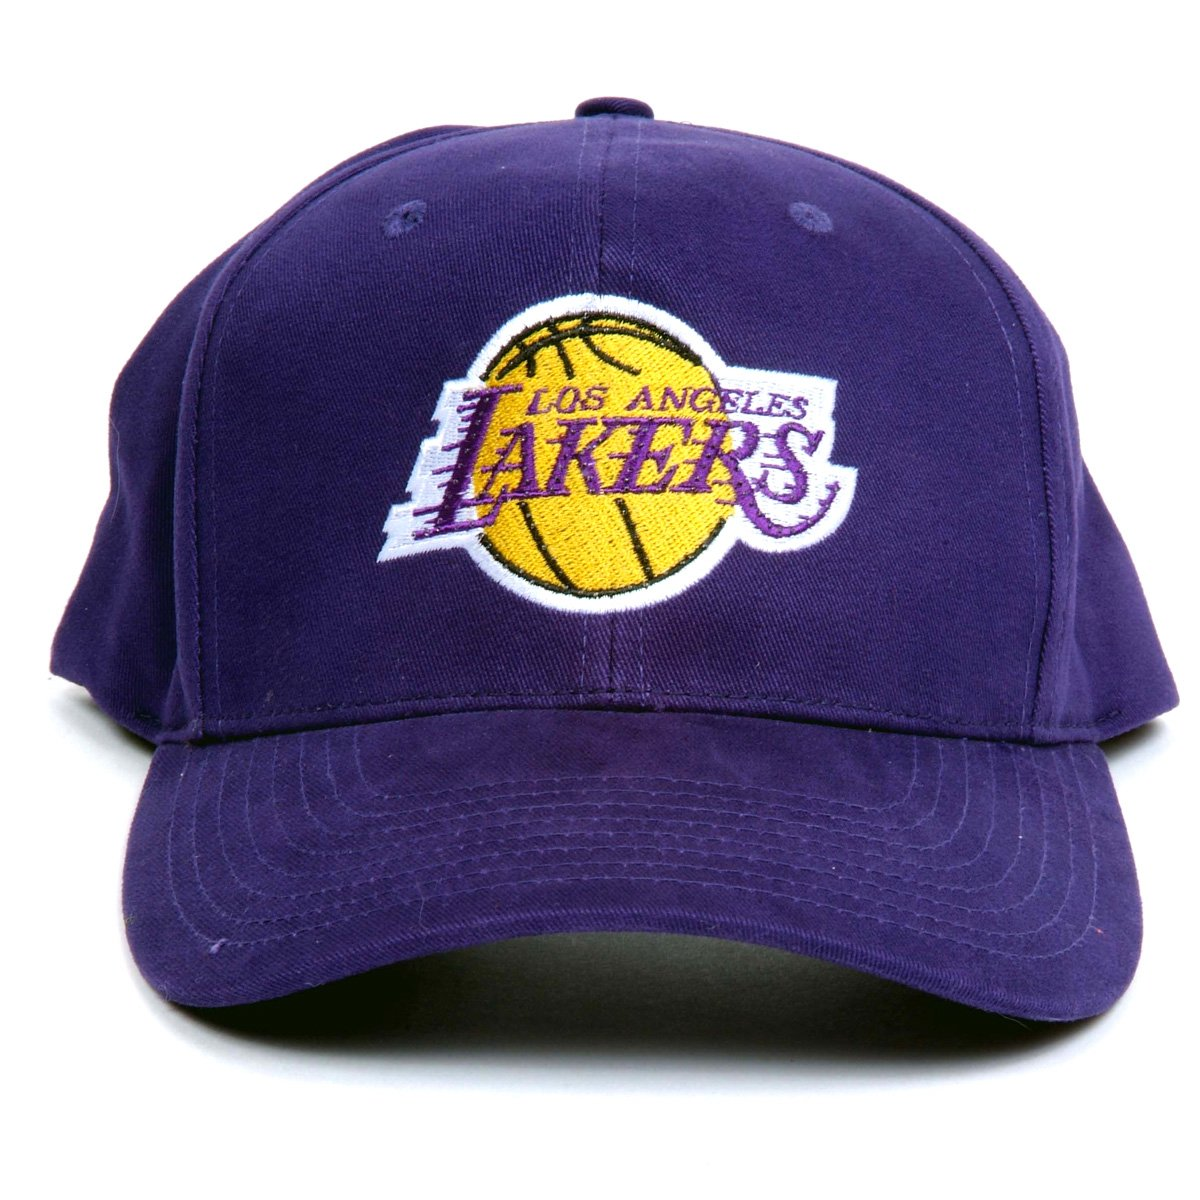 NBA Los Angeles Lakers LED Light-Up Logo Adjustable Hat